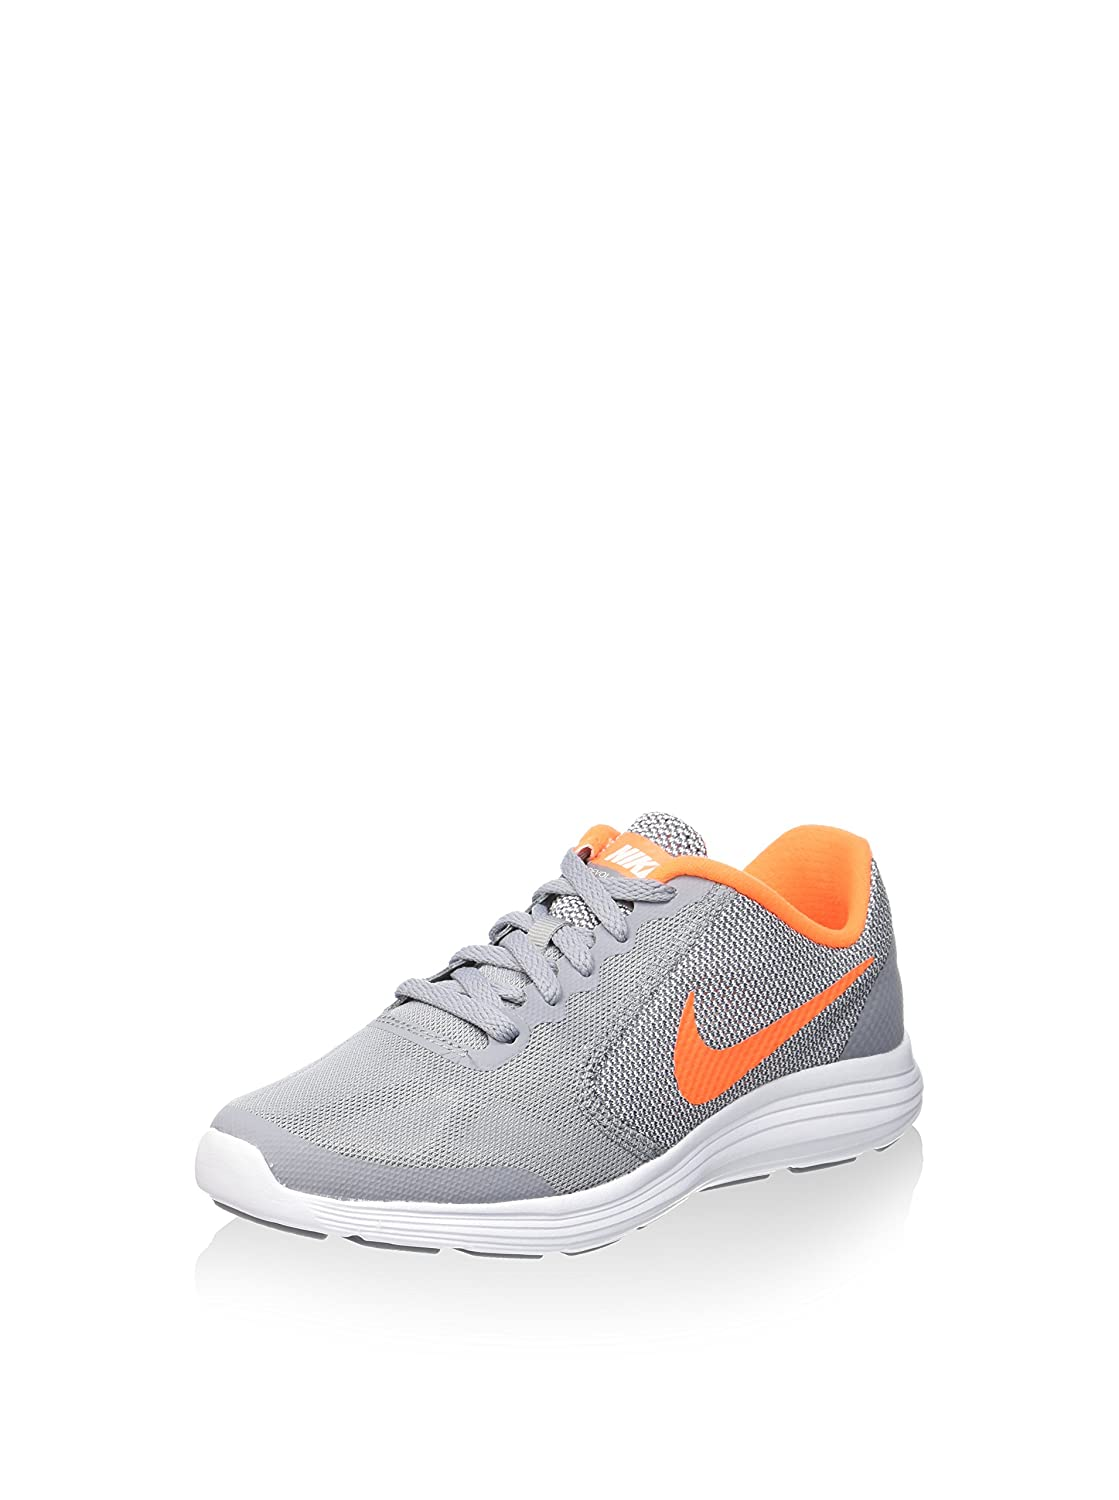 NIKE ' Revolution 3 (GS) Running Shoes B007I81HFE 6 M US Big Kid|Stealth/Total Orange/White